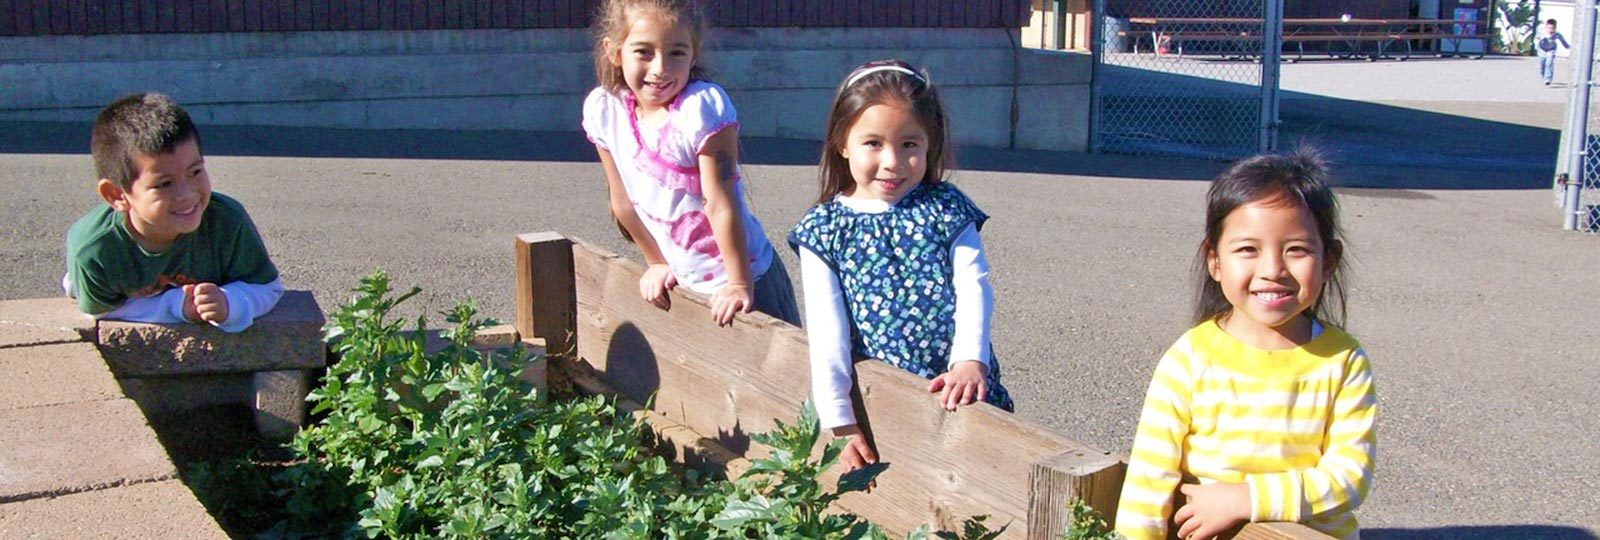 4RS Grants Program students with garden box